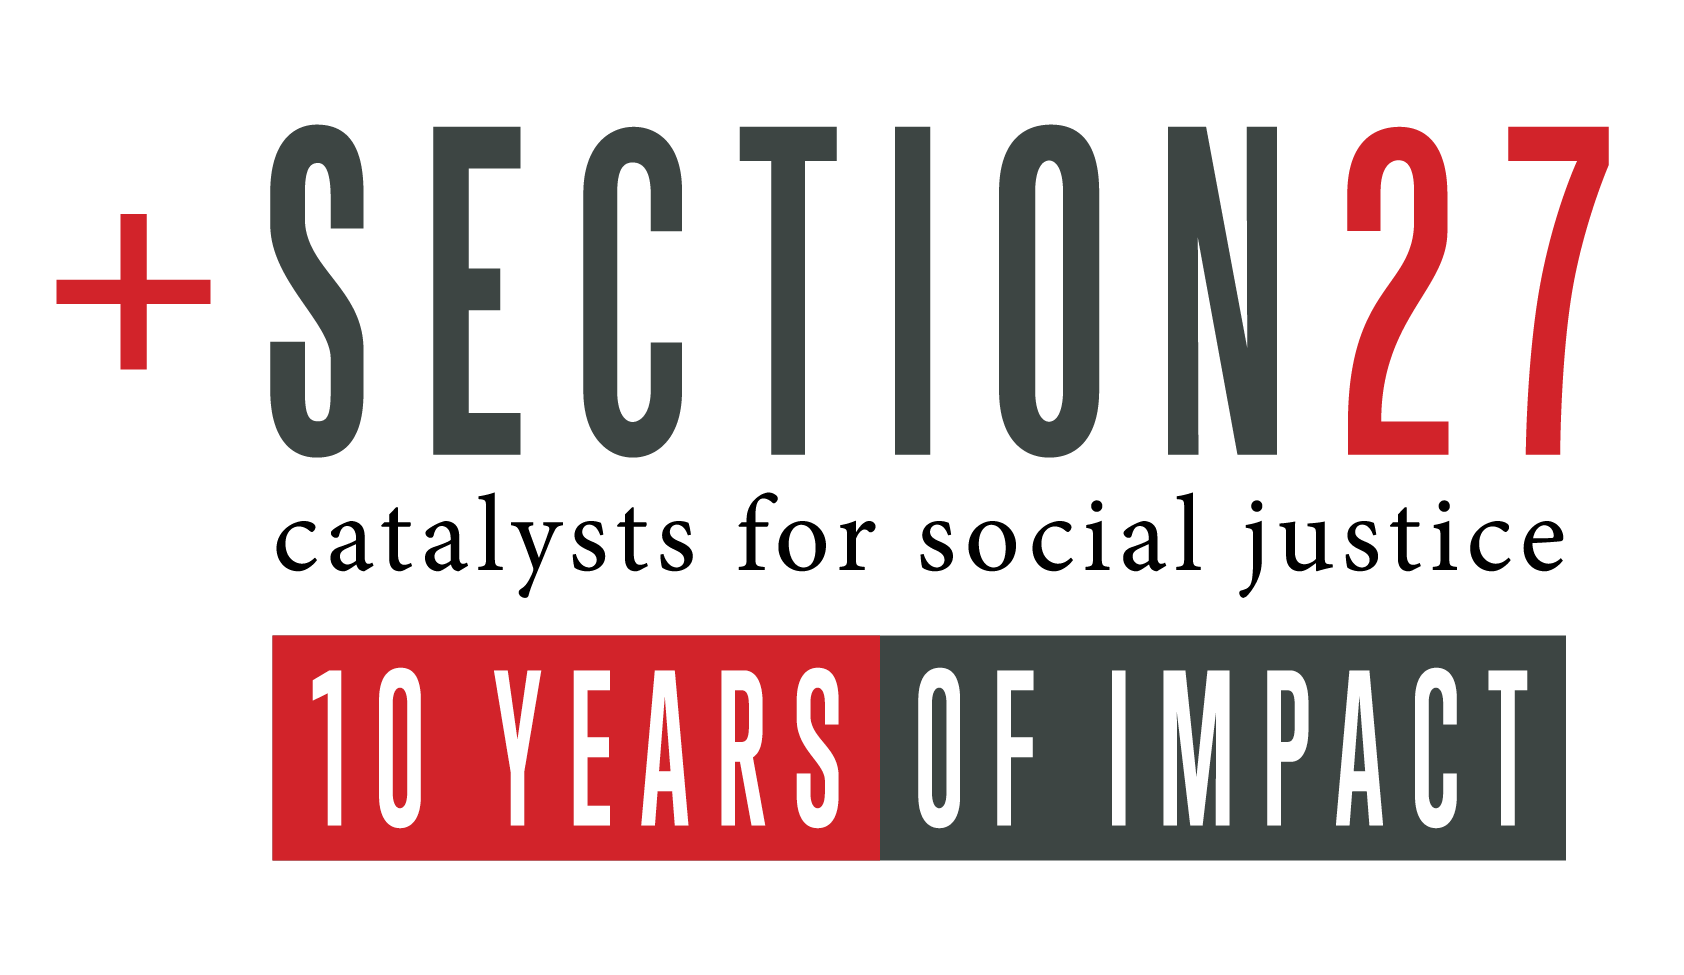 SECTION27, logo, 10 year logo